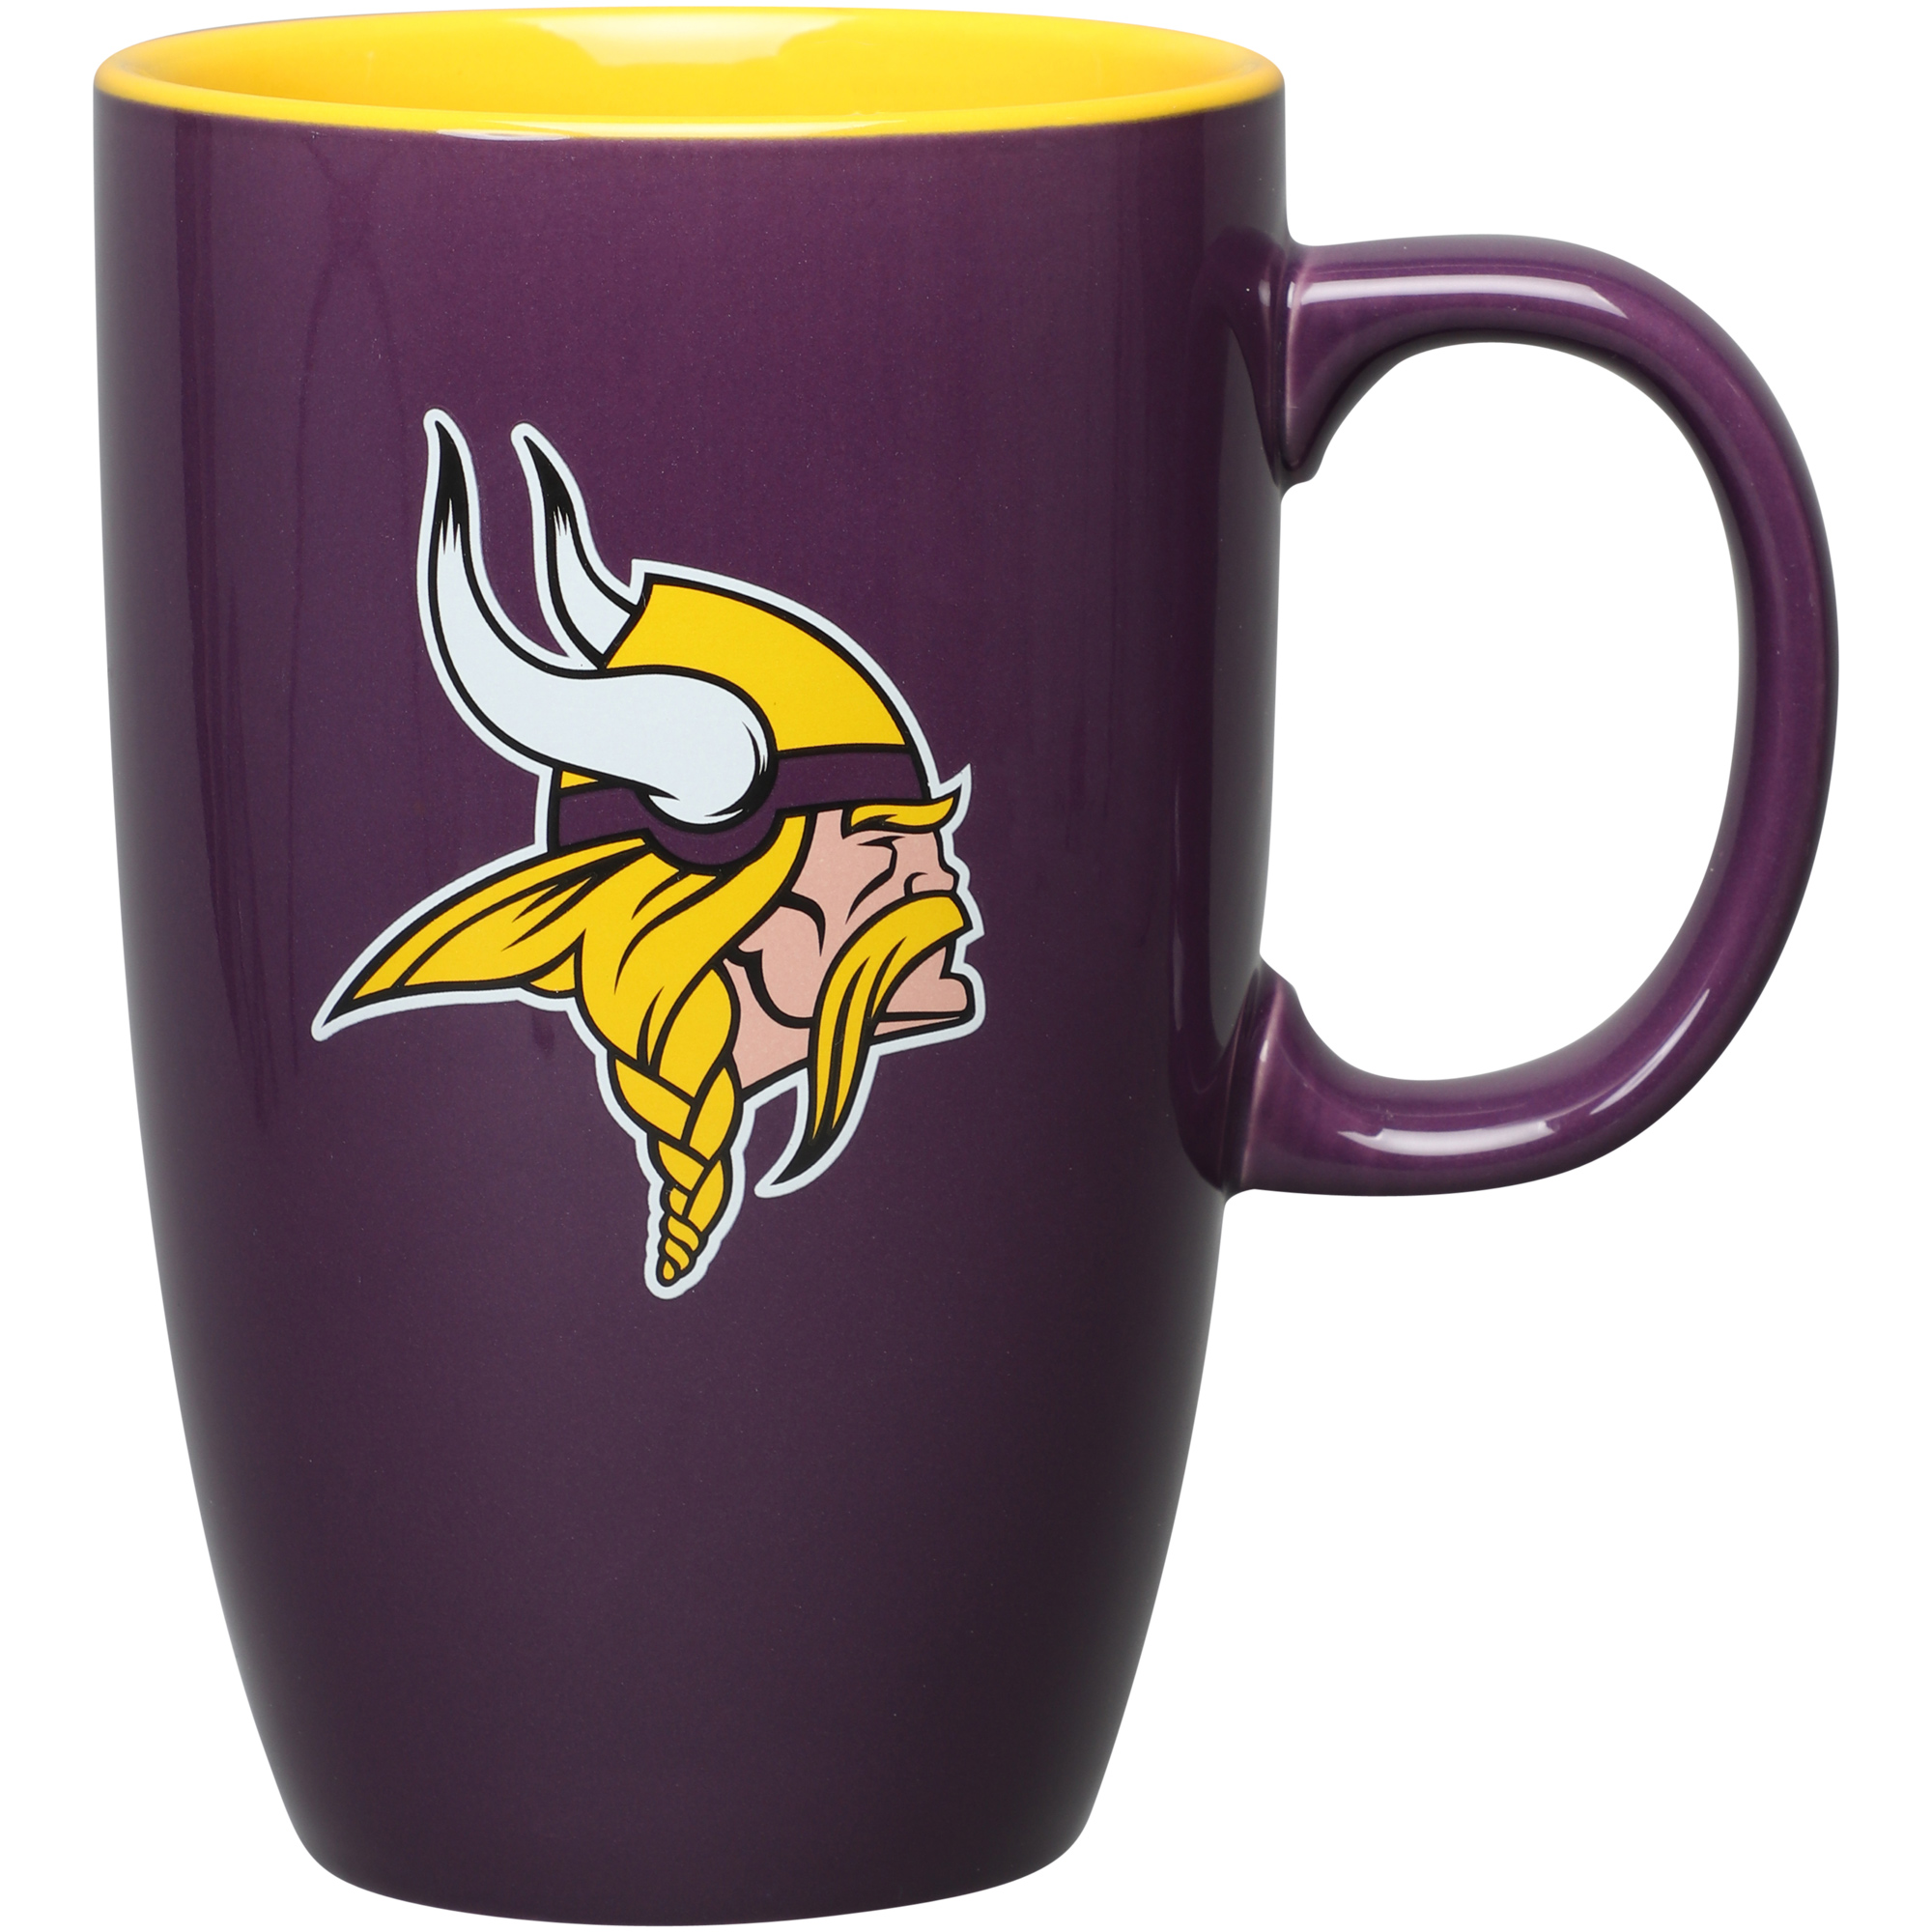 Minnesota Vikings 20oz. Team Color Tall Mug - No Size